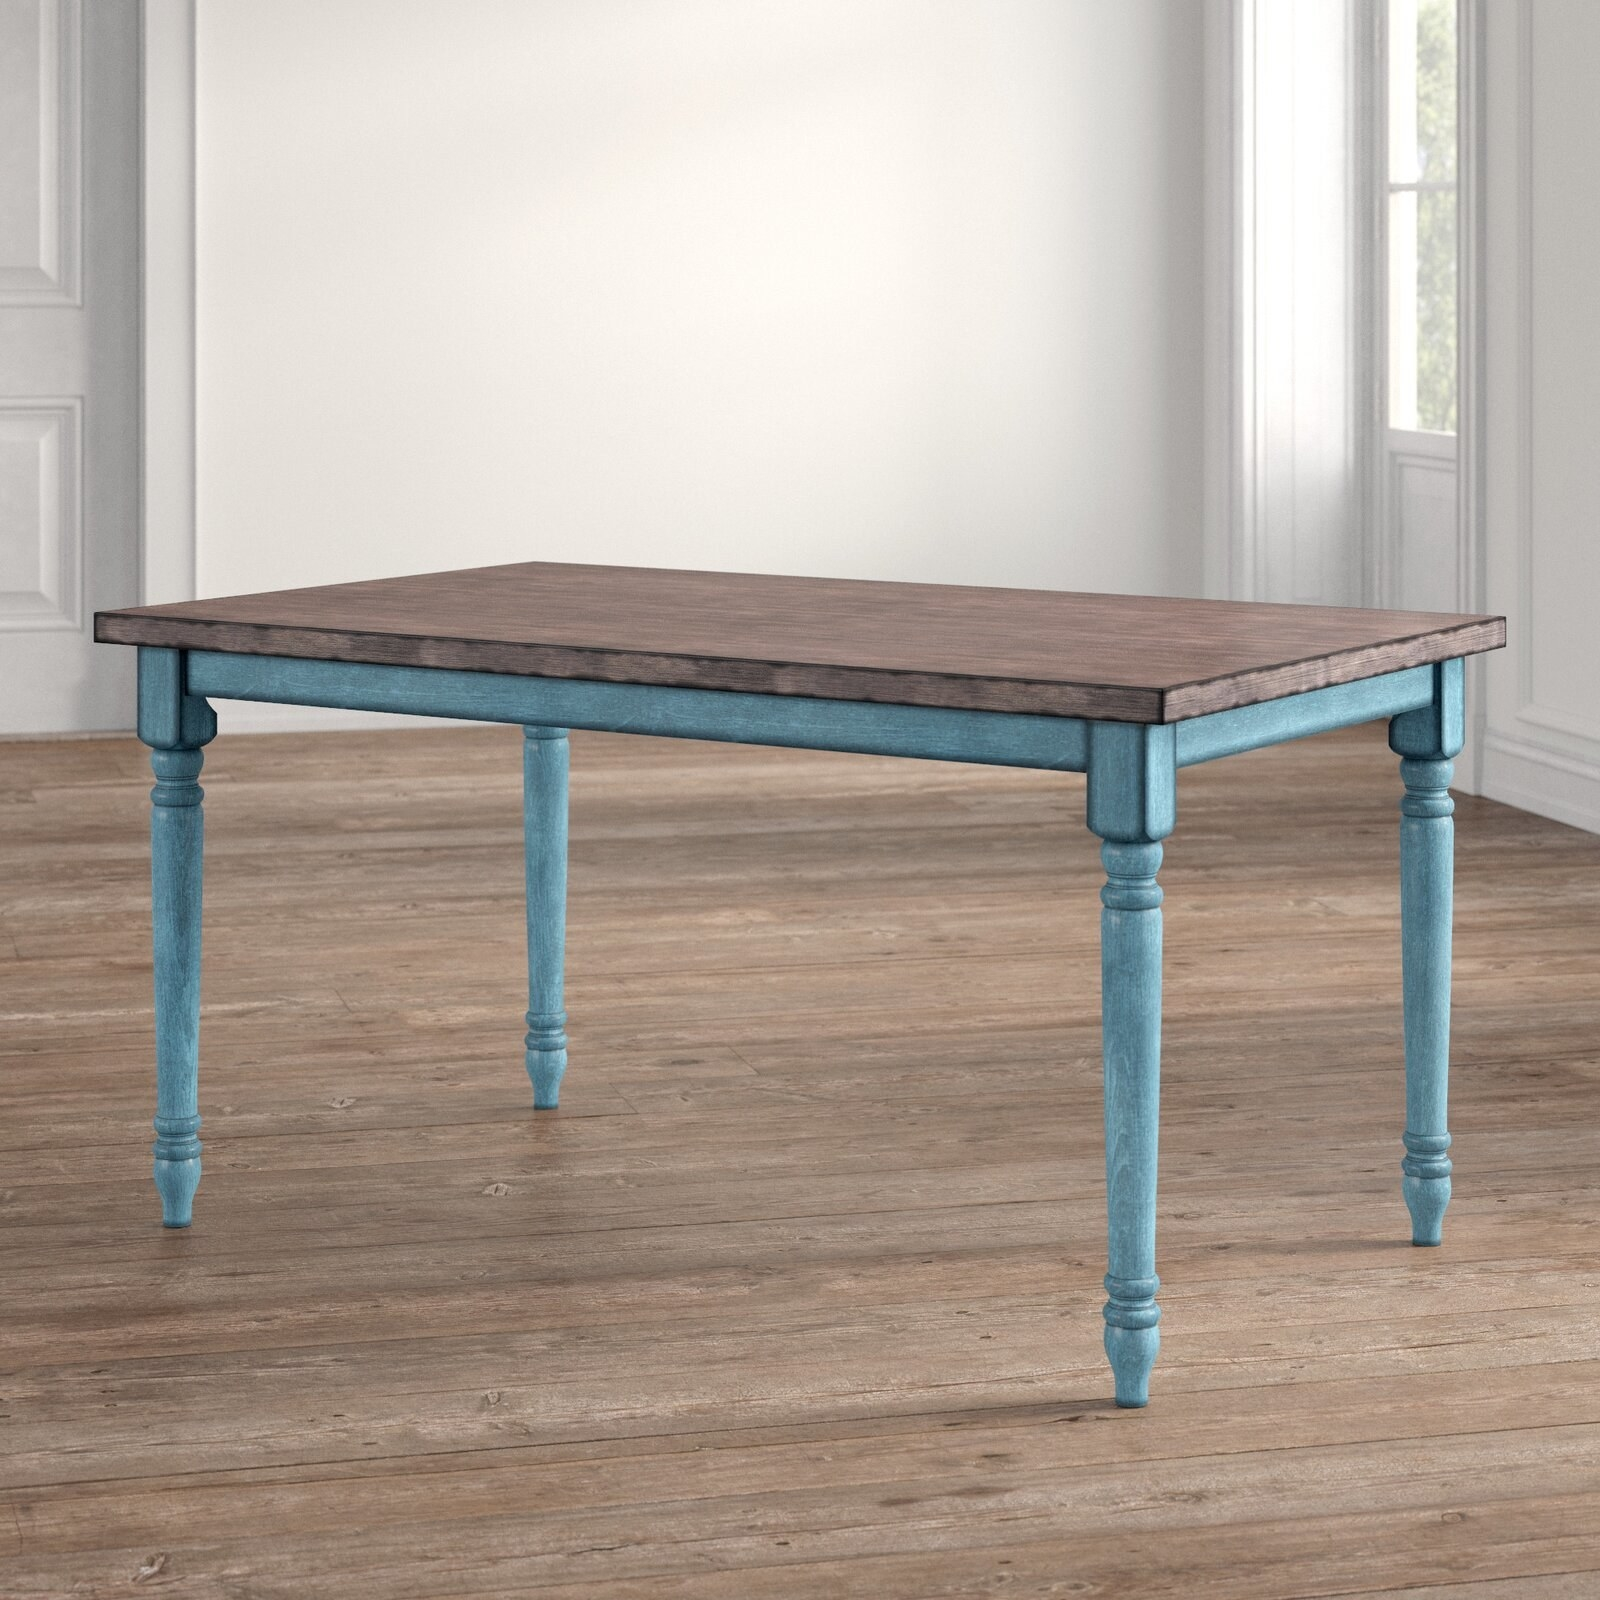 The table, which has teal legs and a brown, wood grain top